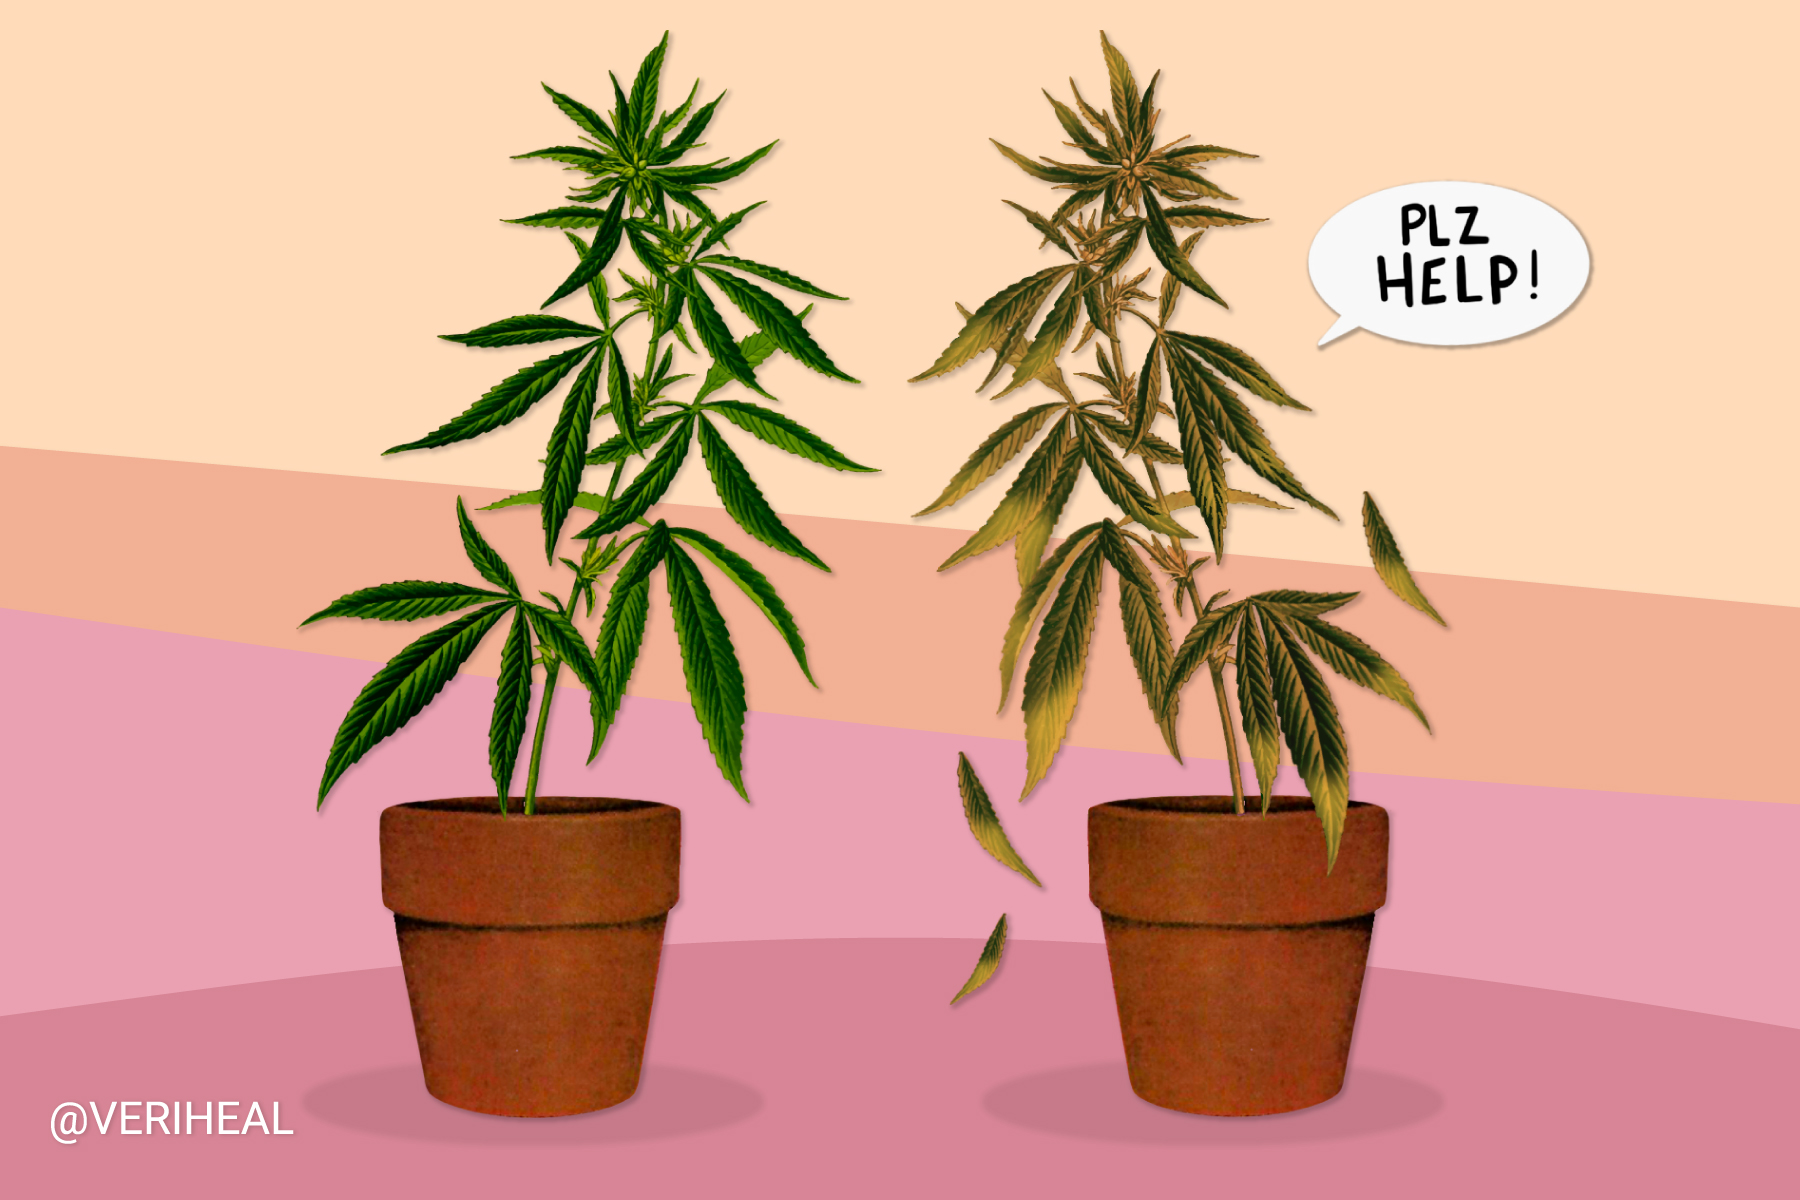 Common Nutrient Issues That Occur in Homegrown Cannabis Plants